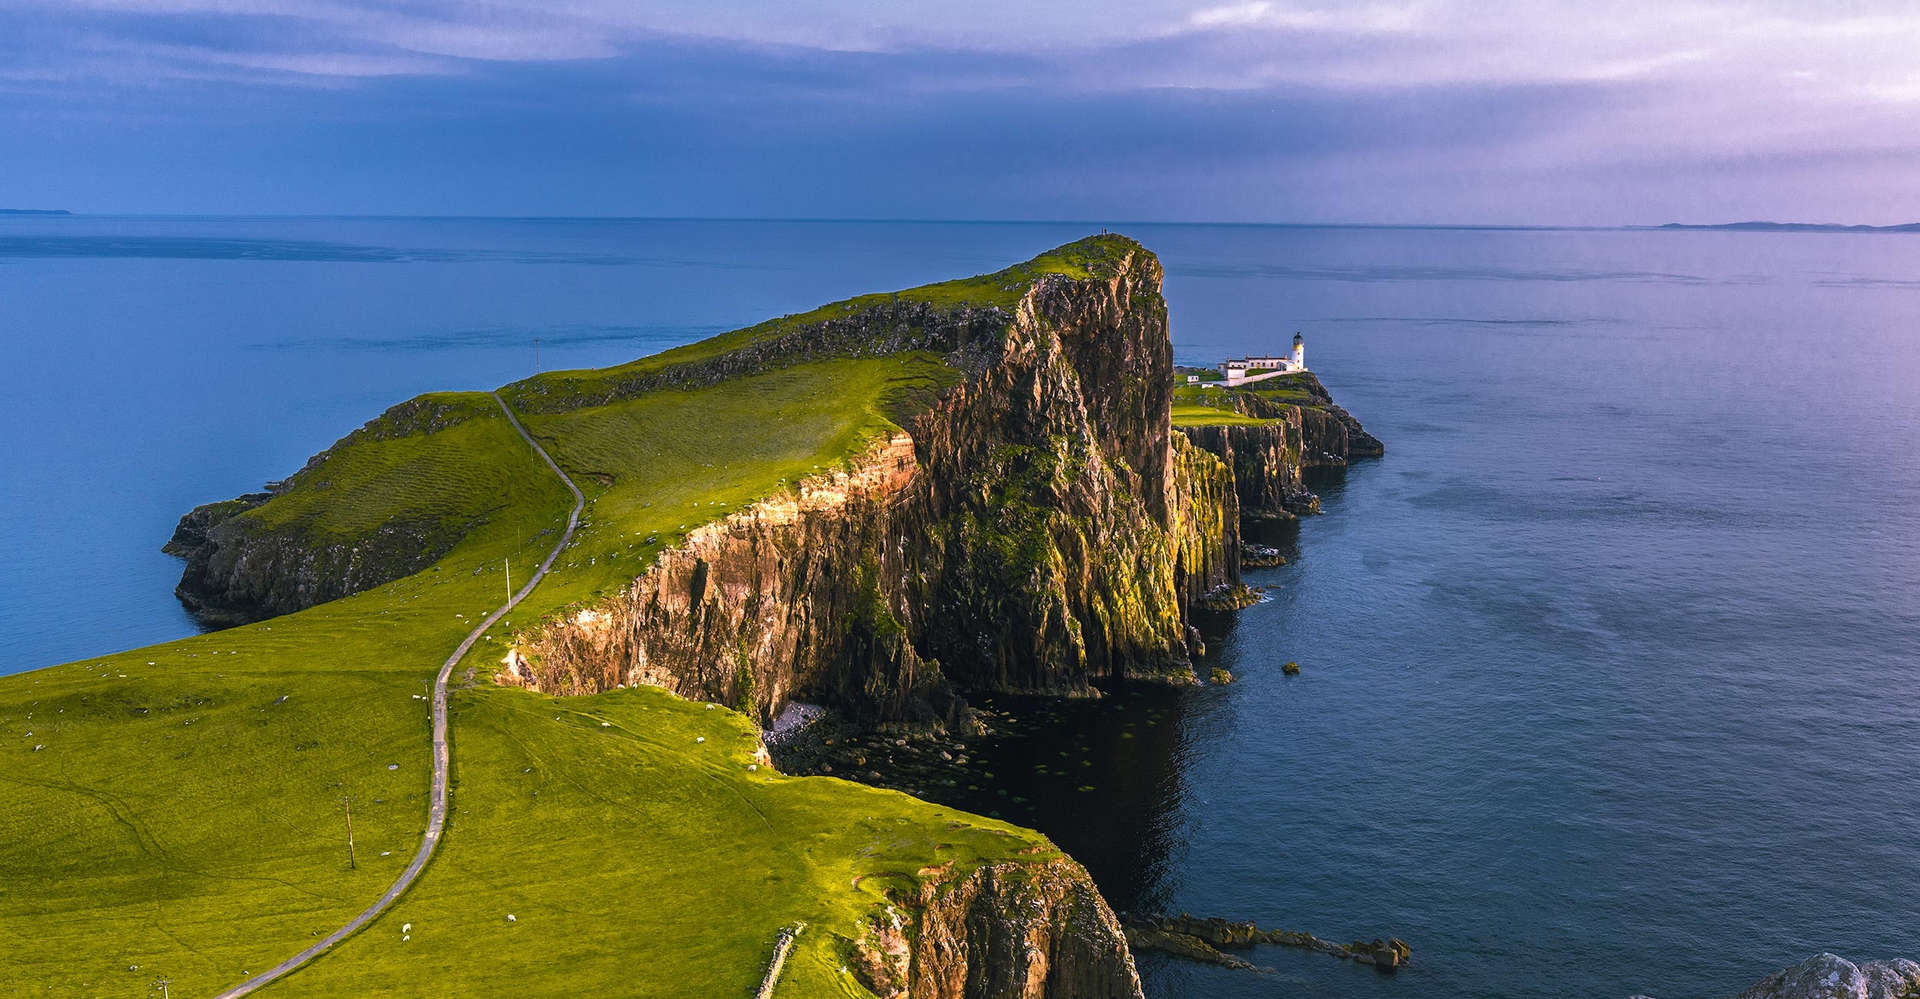 neist point on the isle of skye scotland with open blue sea and sky